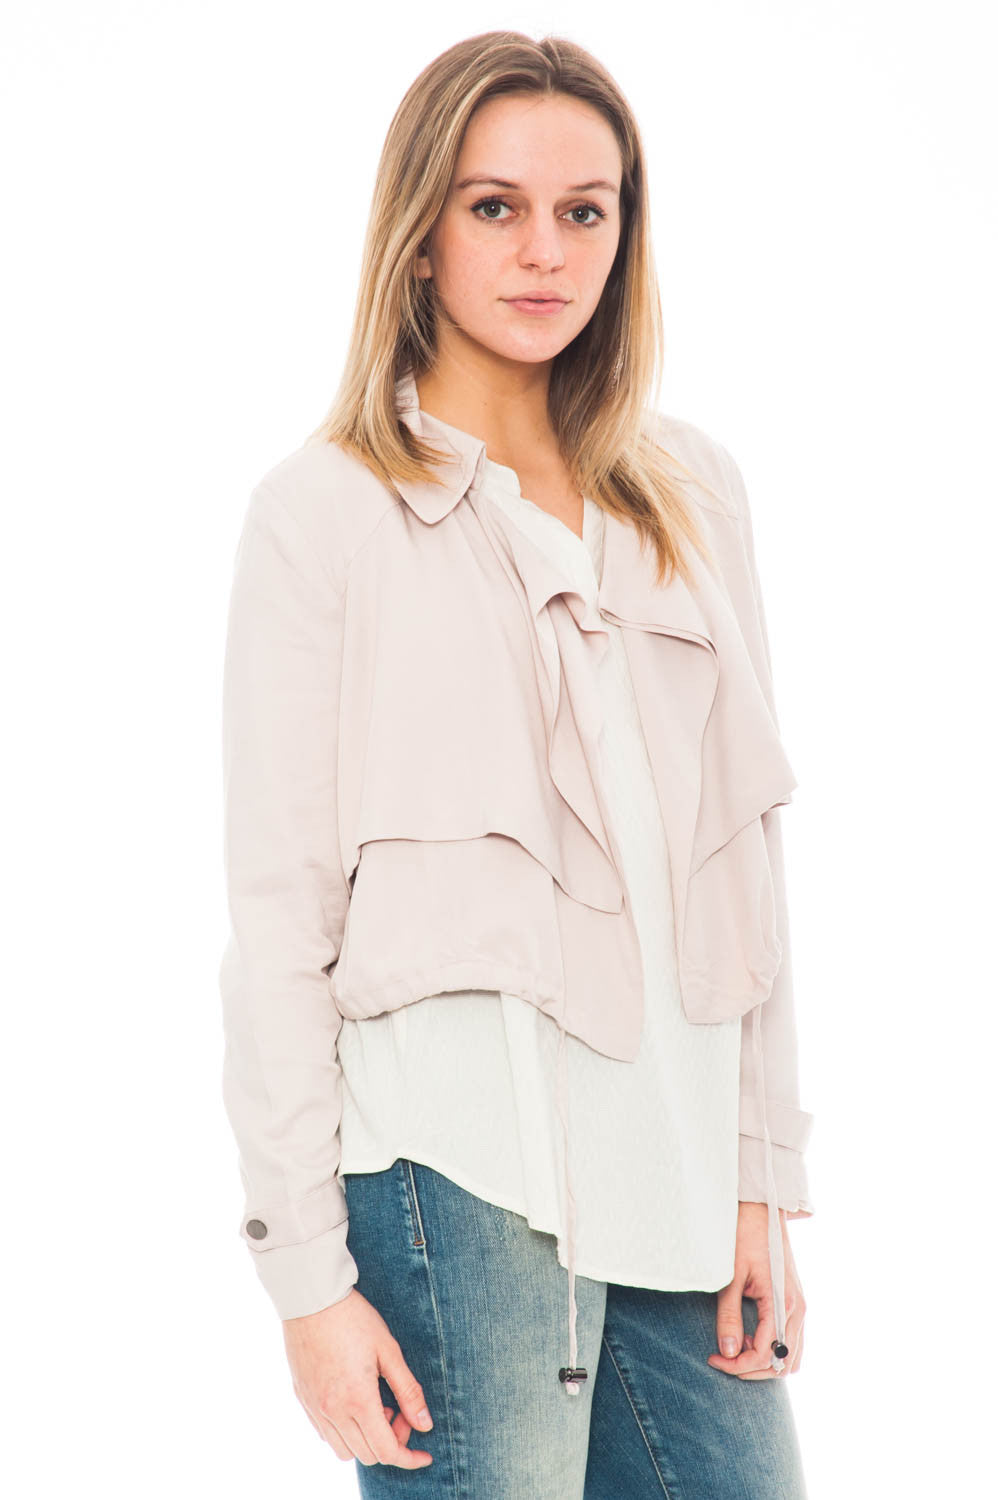 Jacket - Herring by BB dakota overlapped crop jacket